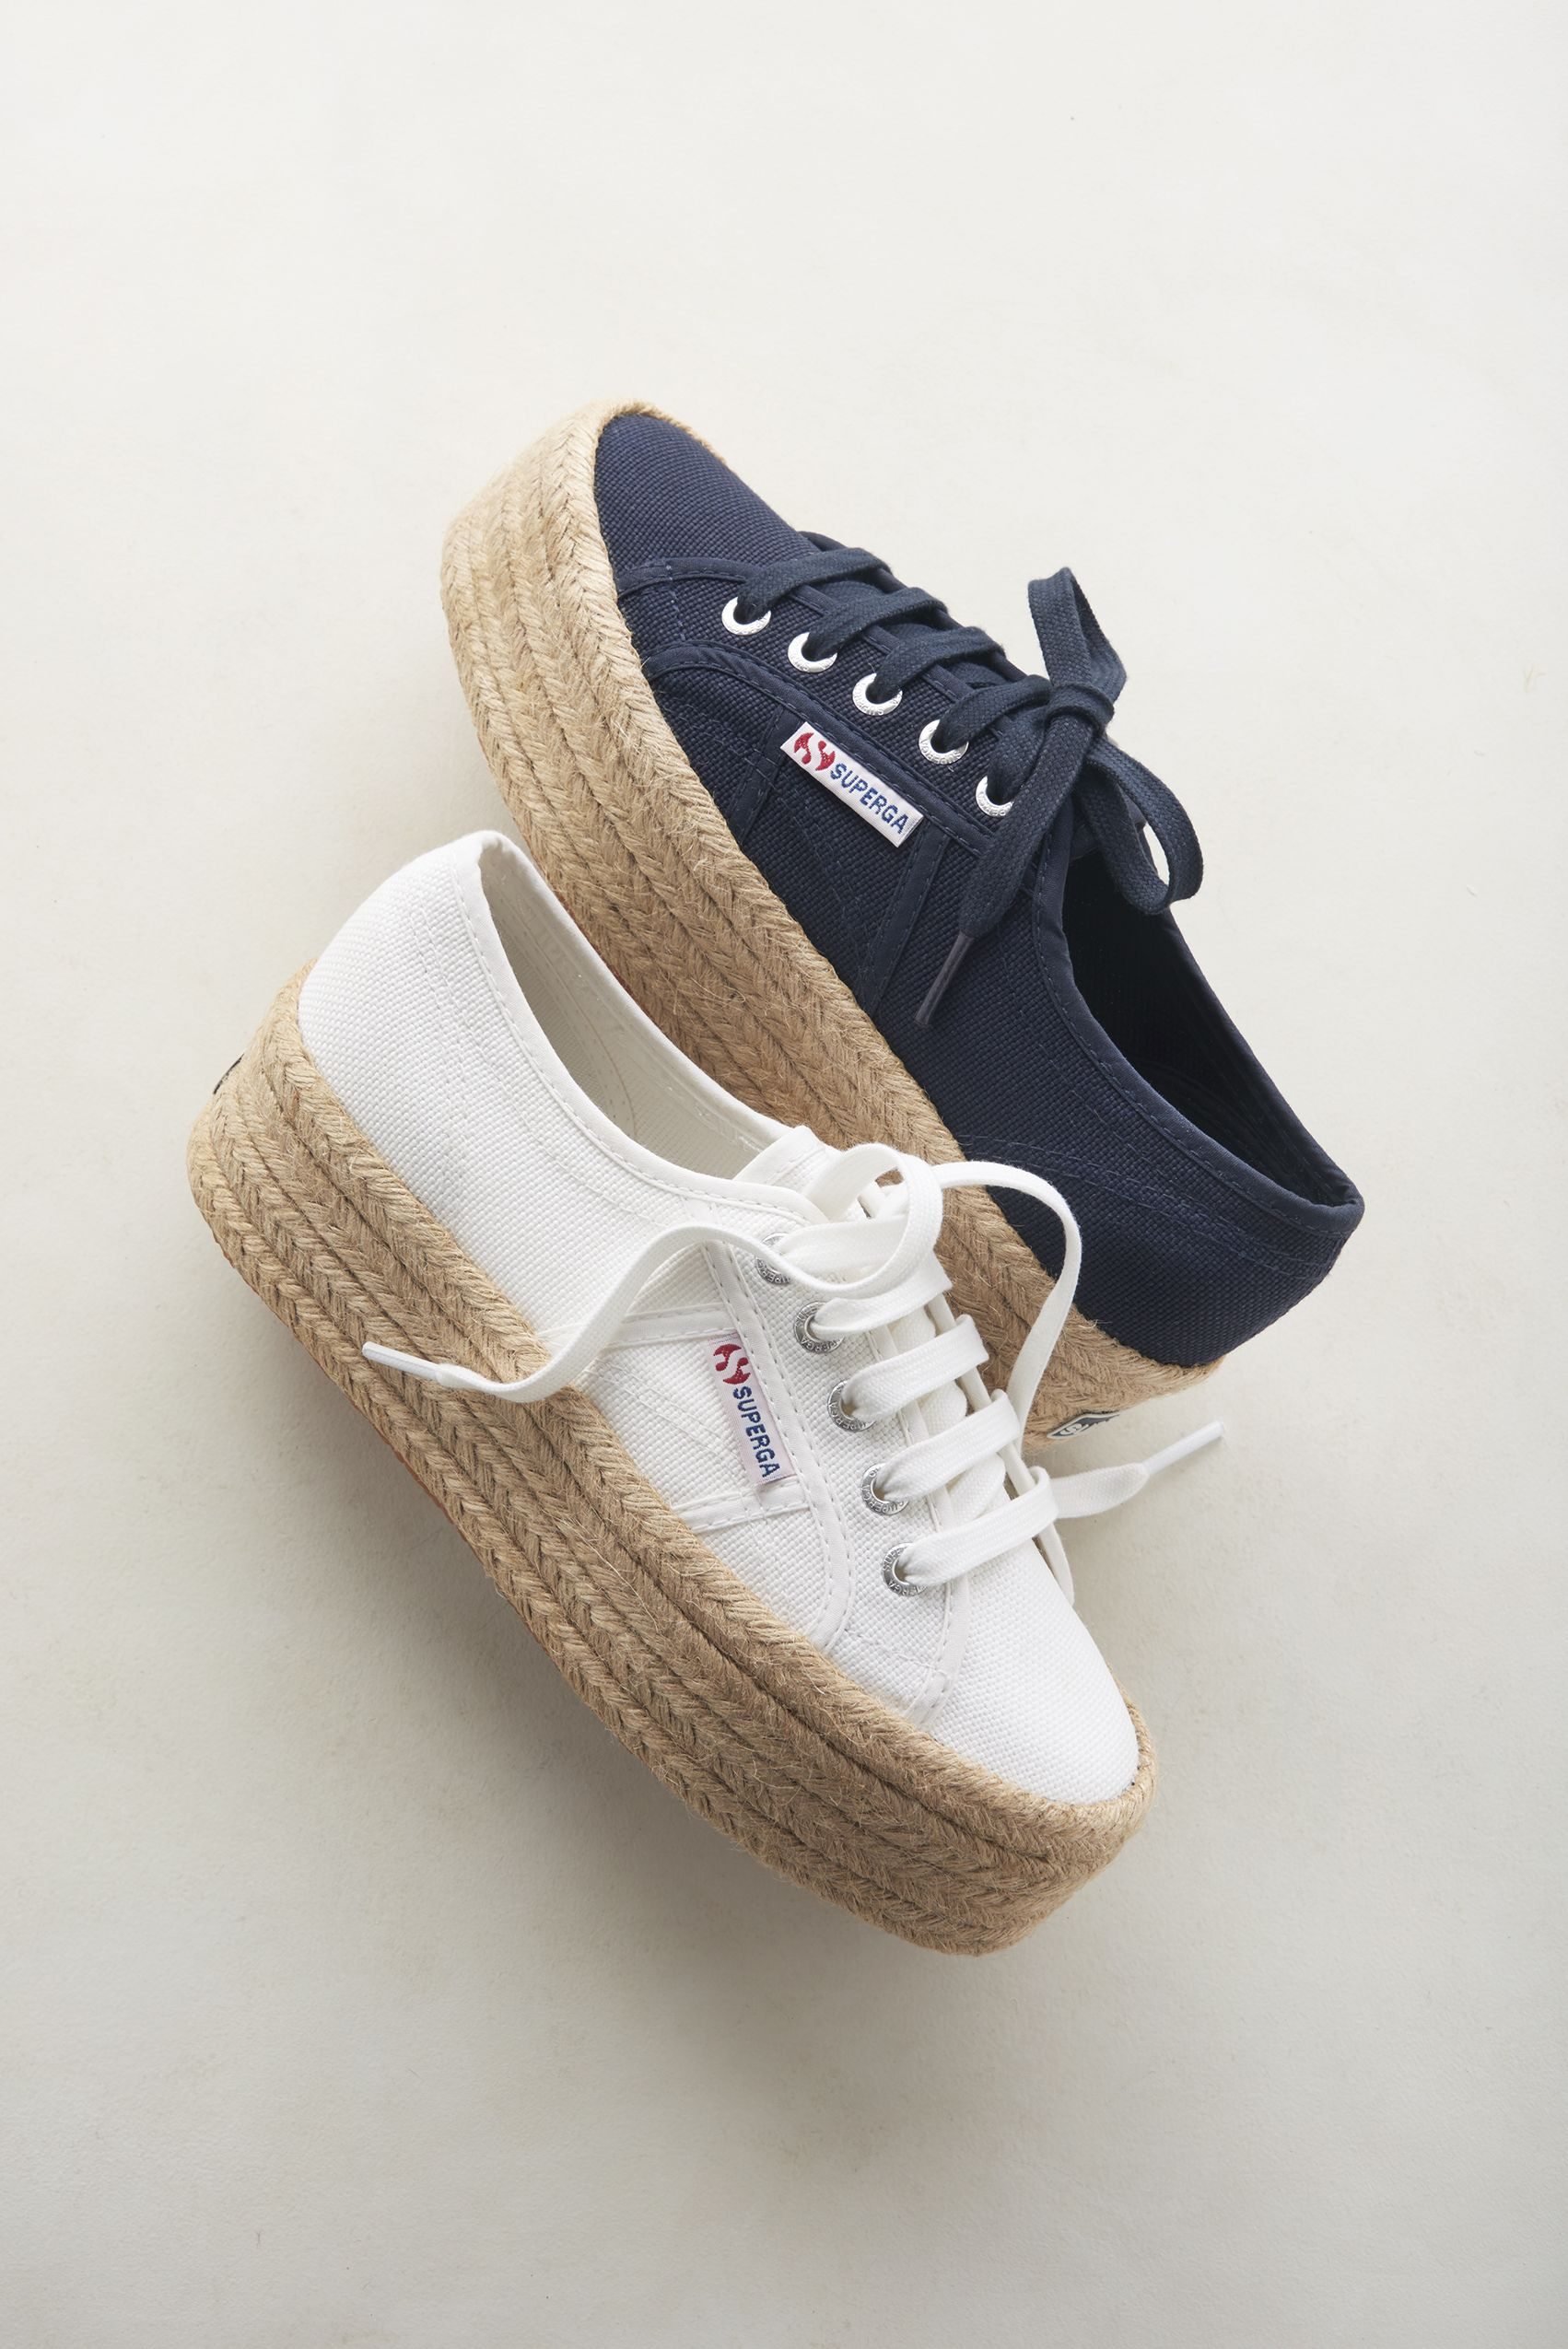 Superga raffia-wrapped platform sneaker (in white and navy).  f813642ea1a